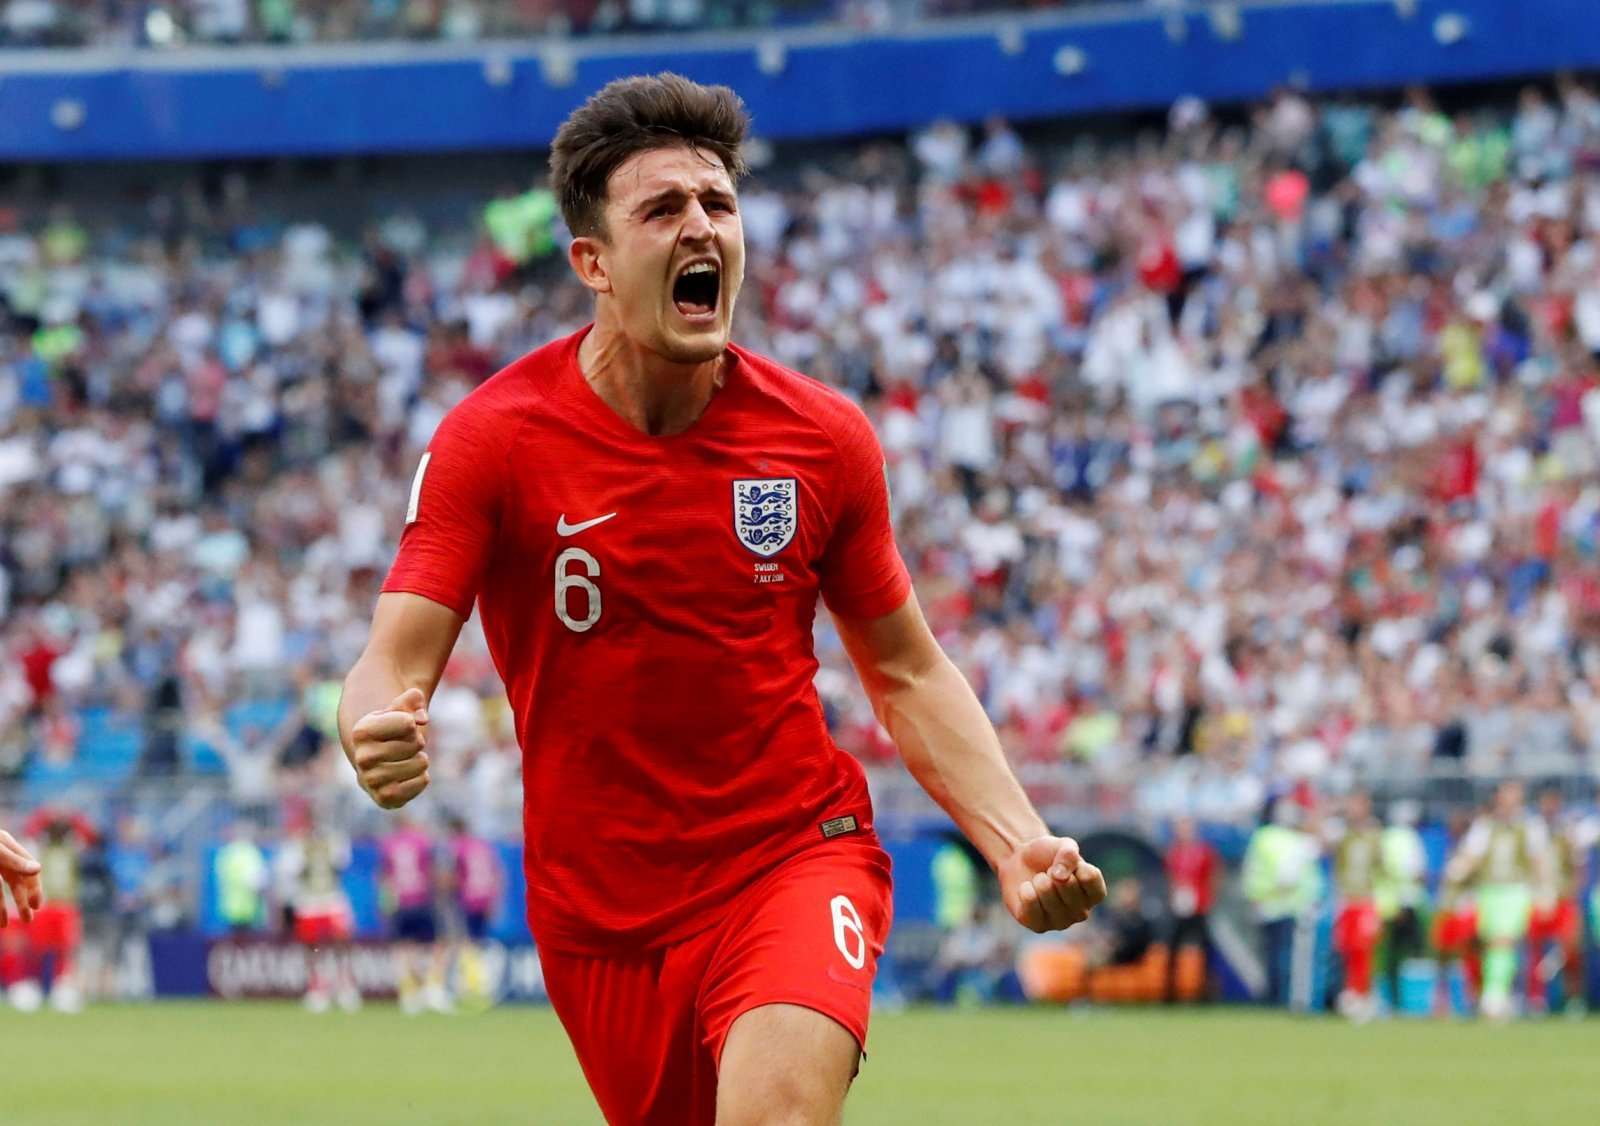 Harry Maguire is a cult-hero totally made for Tottenham Hotspur